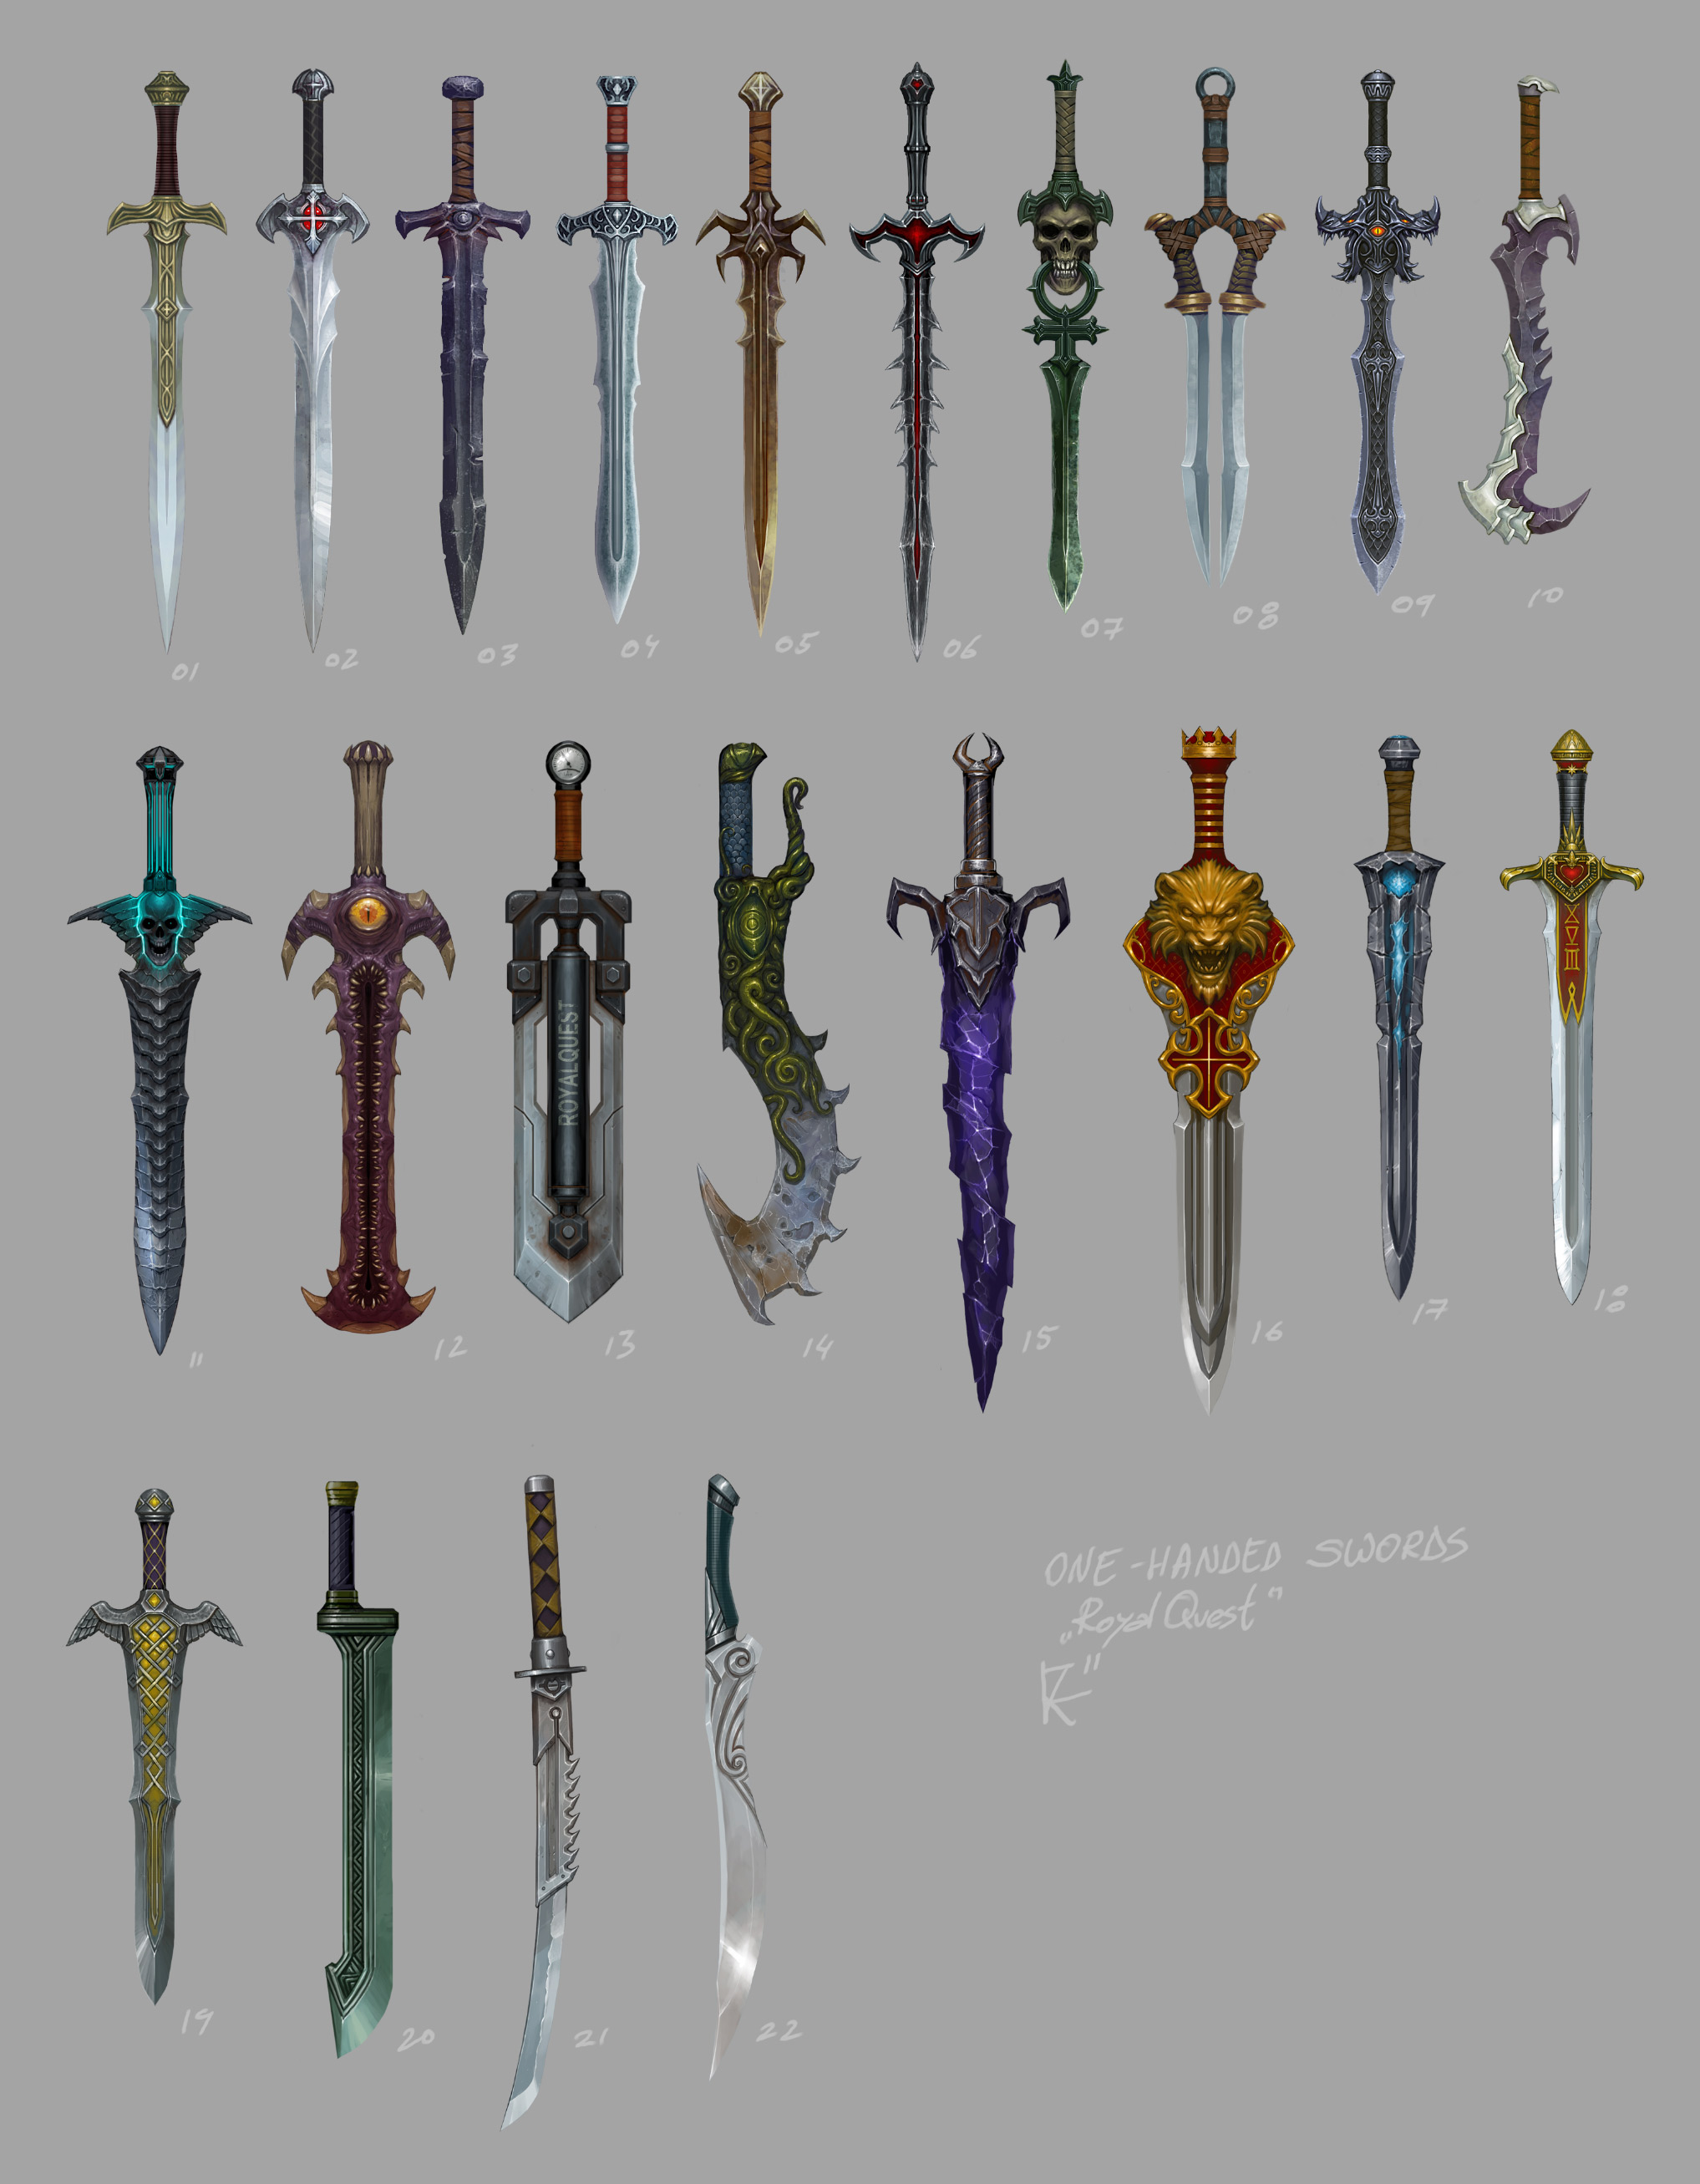 Drawn dagger one Are These  never swords